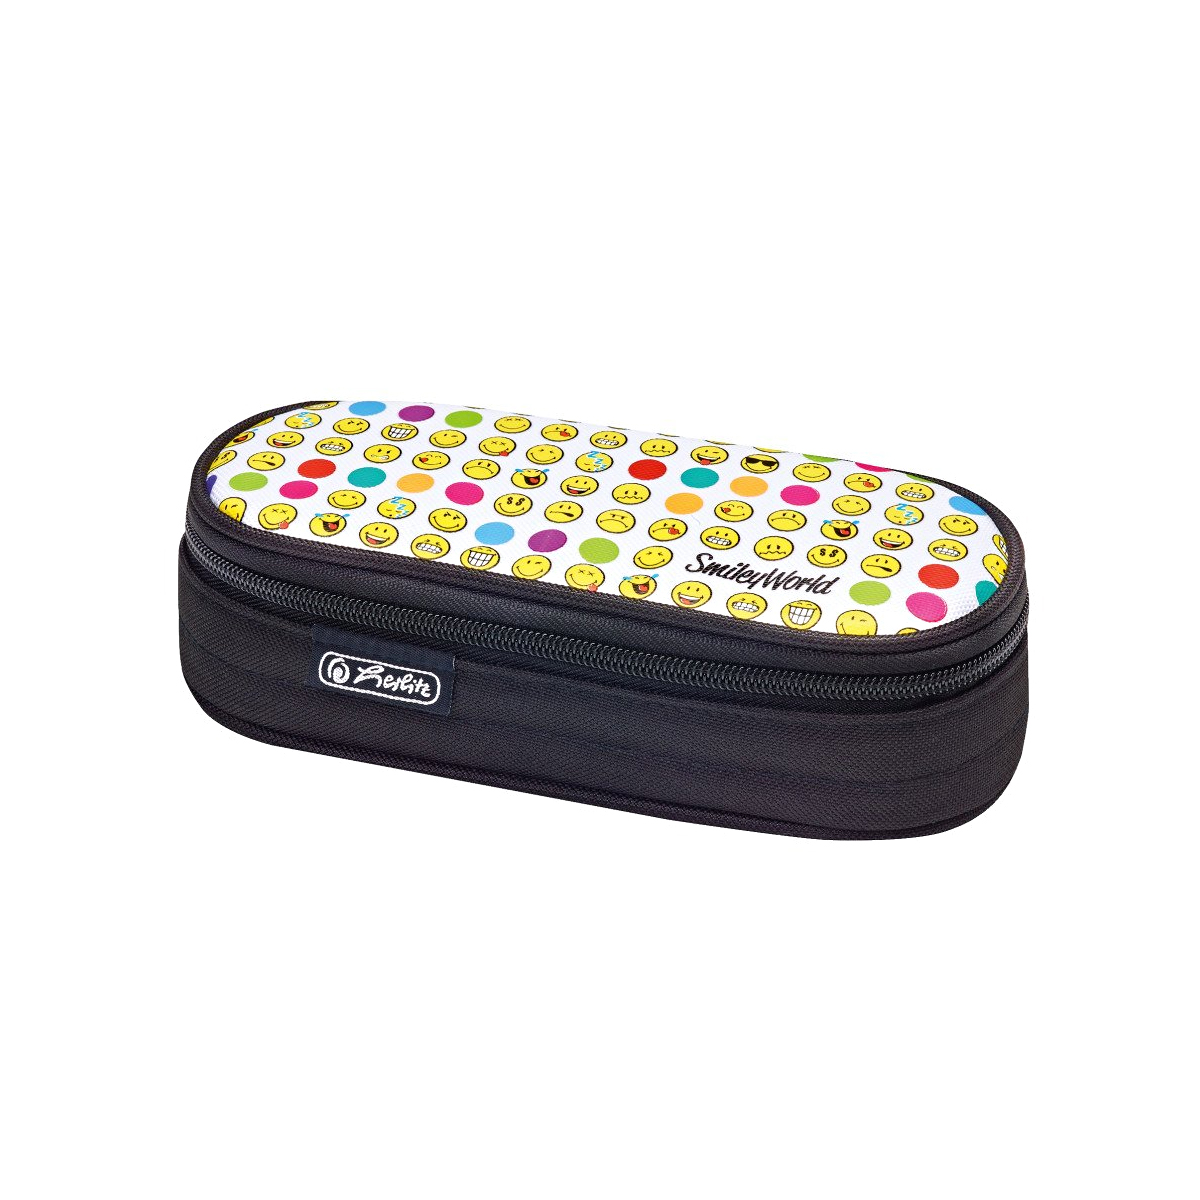 Penar Necessaire Oval, Motiv Smileyworld, Rainbow Faces, Herlitz, 50015214